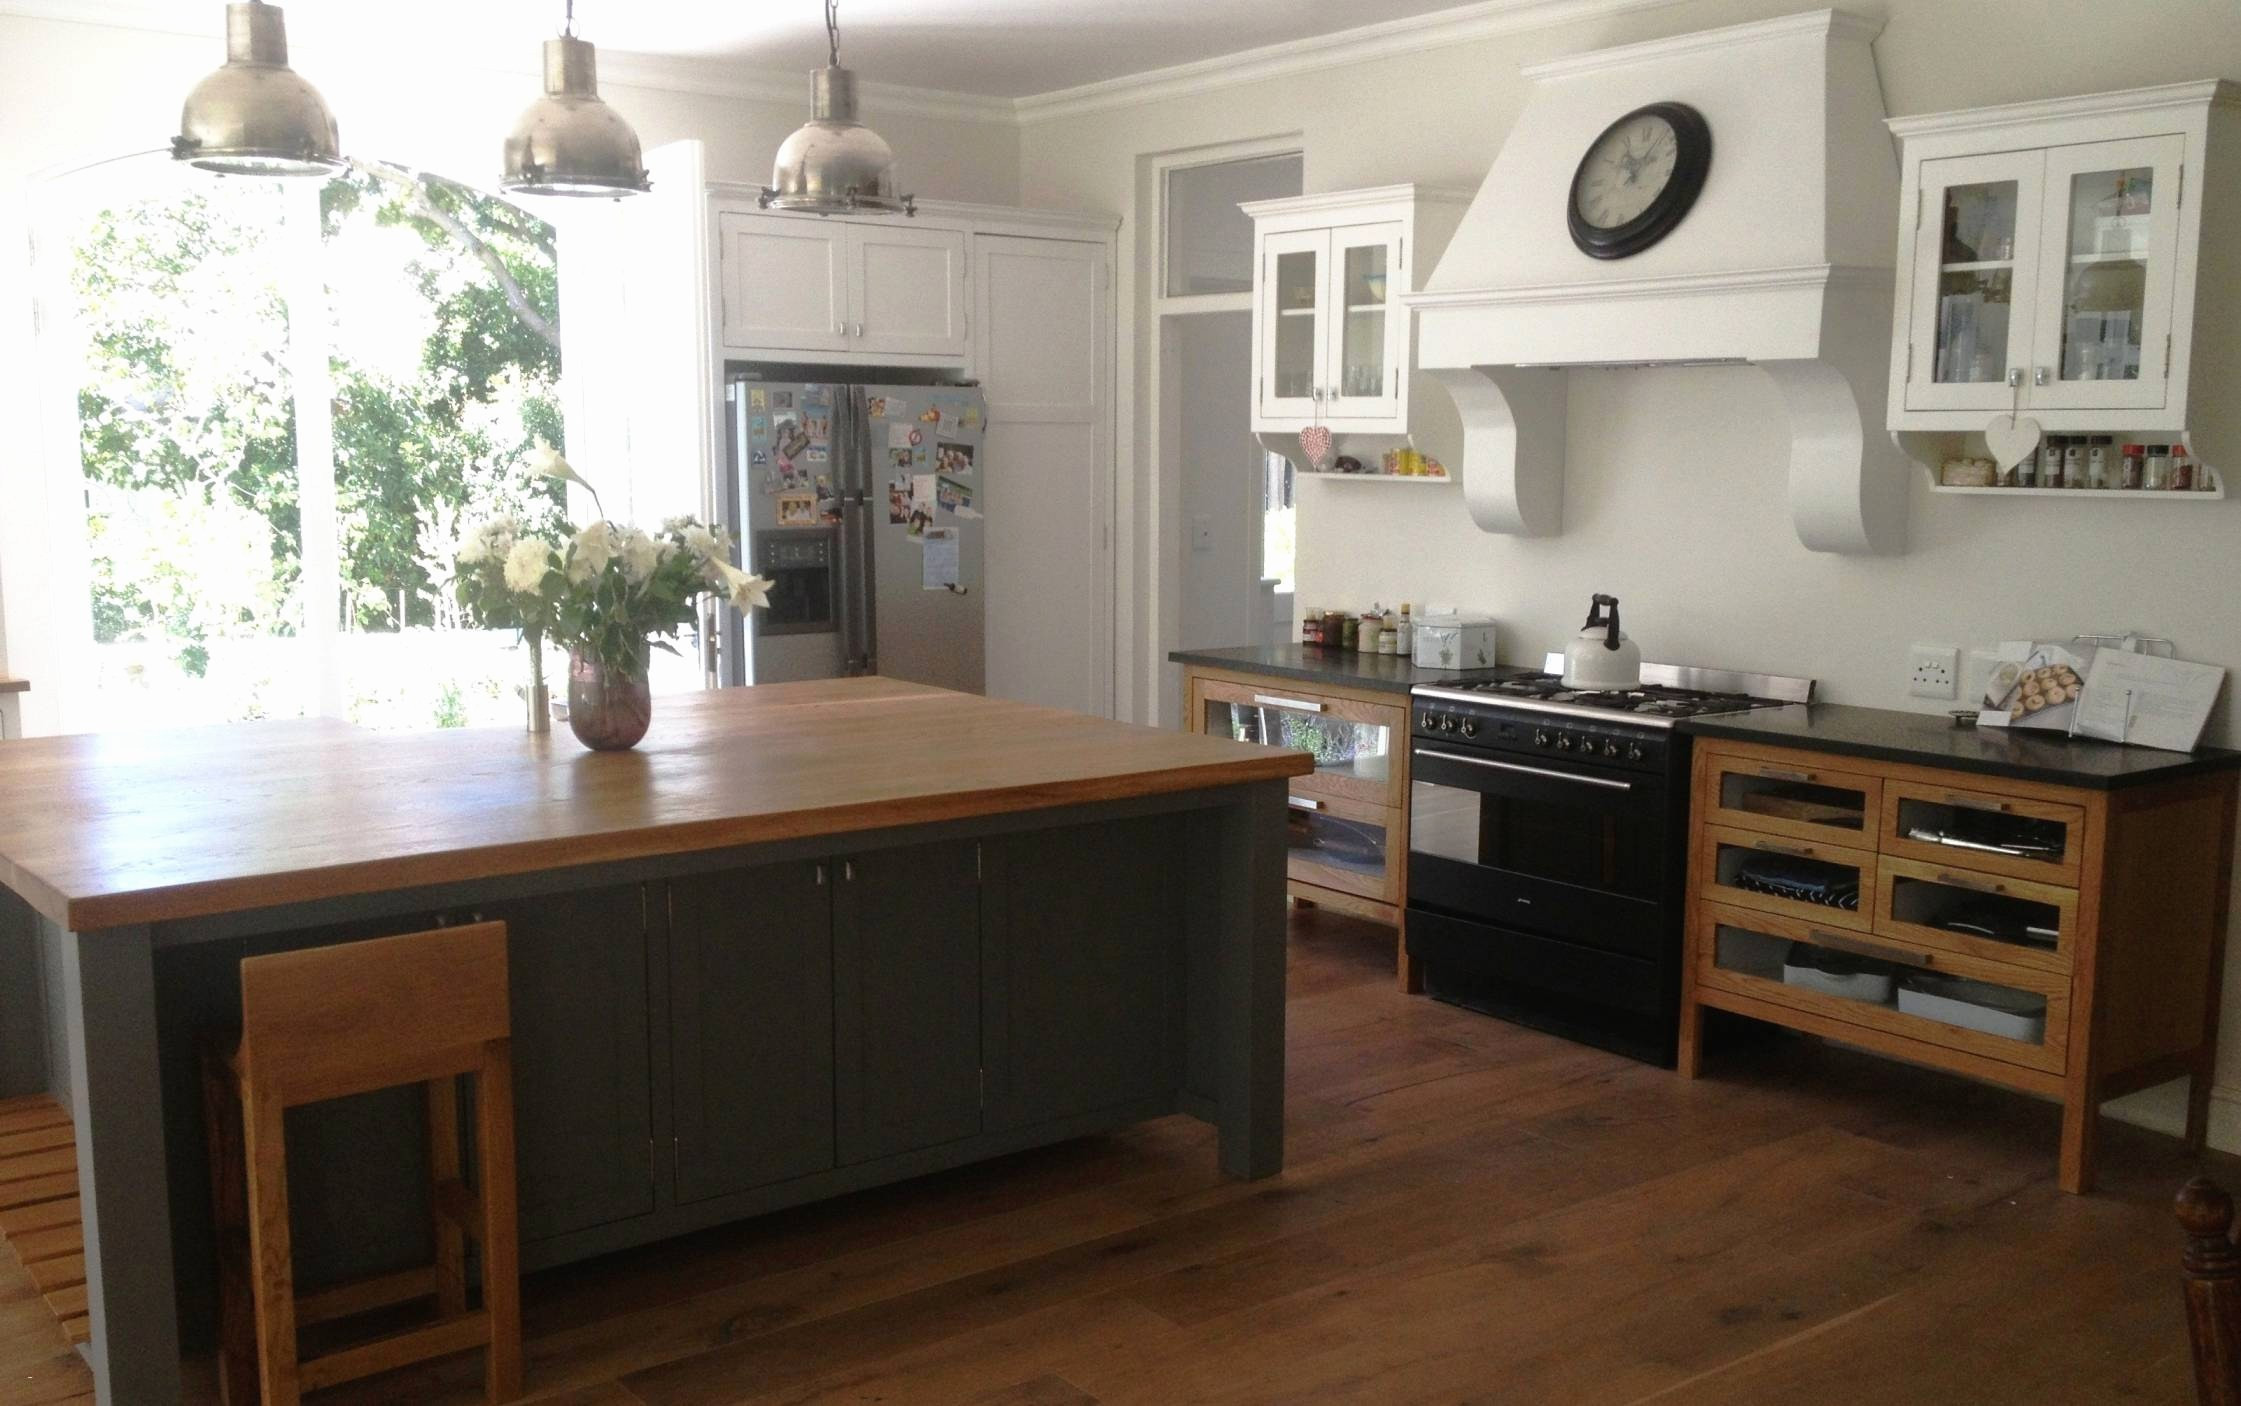 Best ideas about Cost To Install Kitchen Cabinets . Save or Pin 25 Lovely Cost to Install Kitchen Cabinets Now.